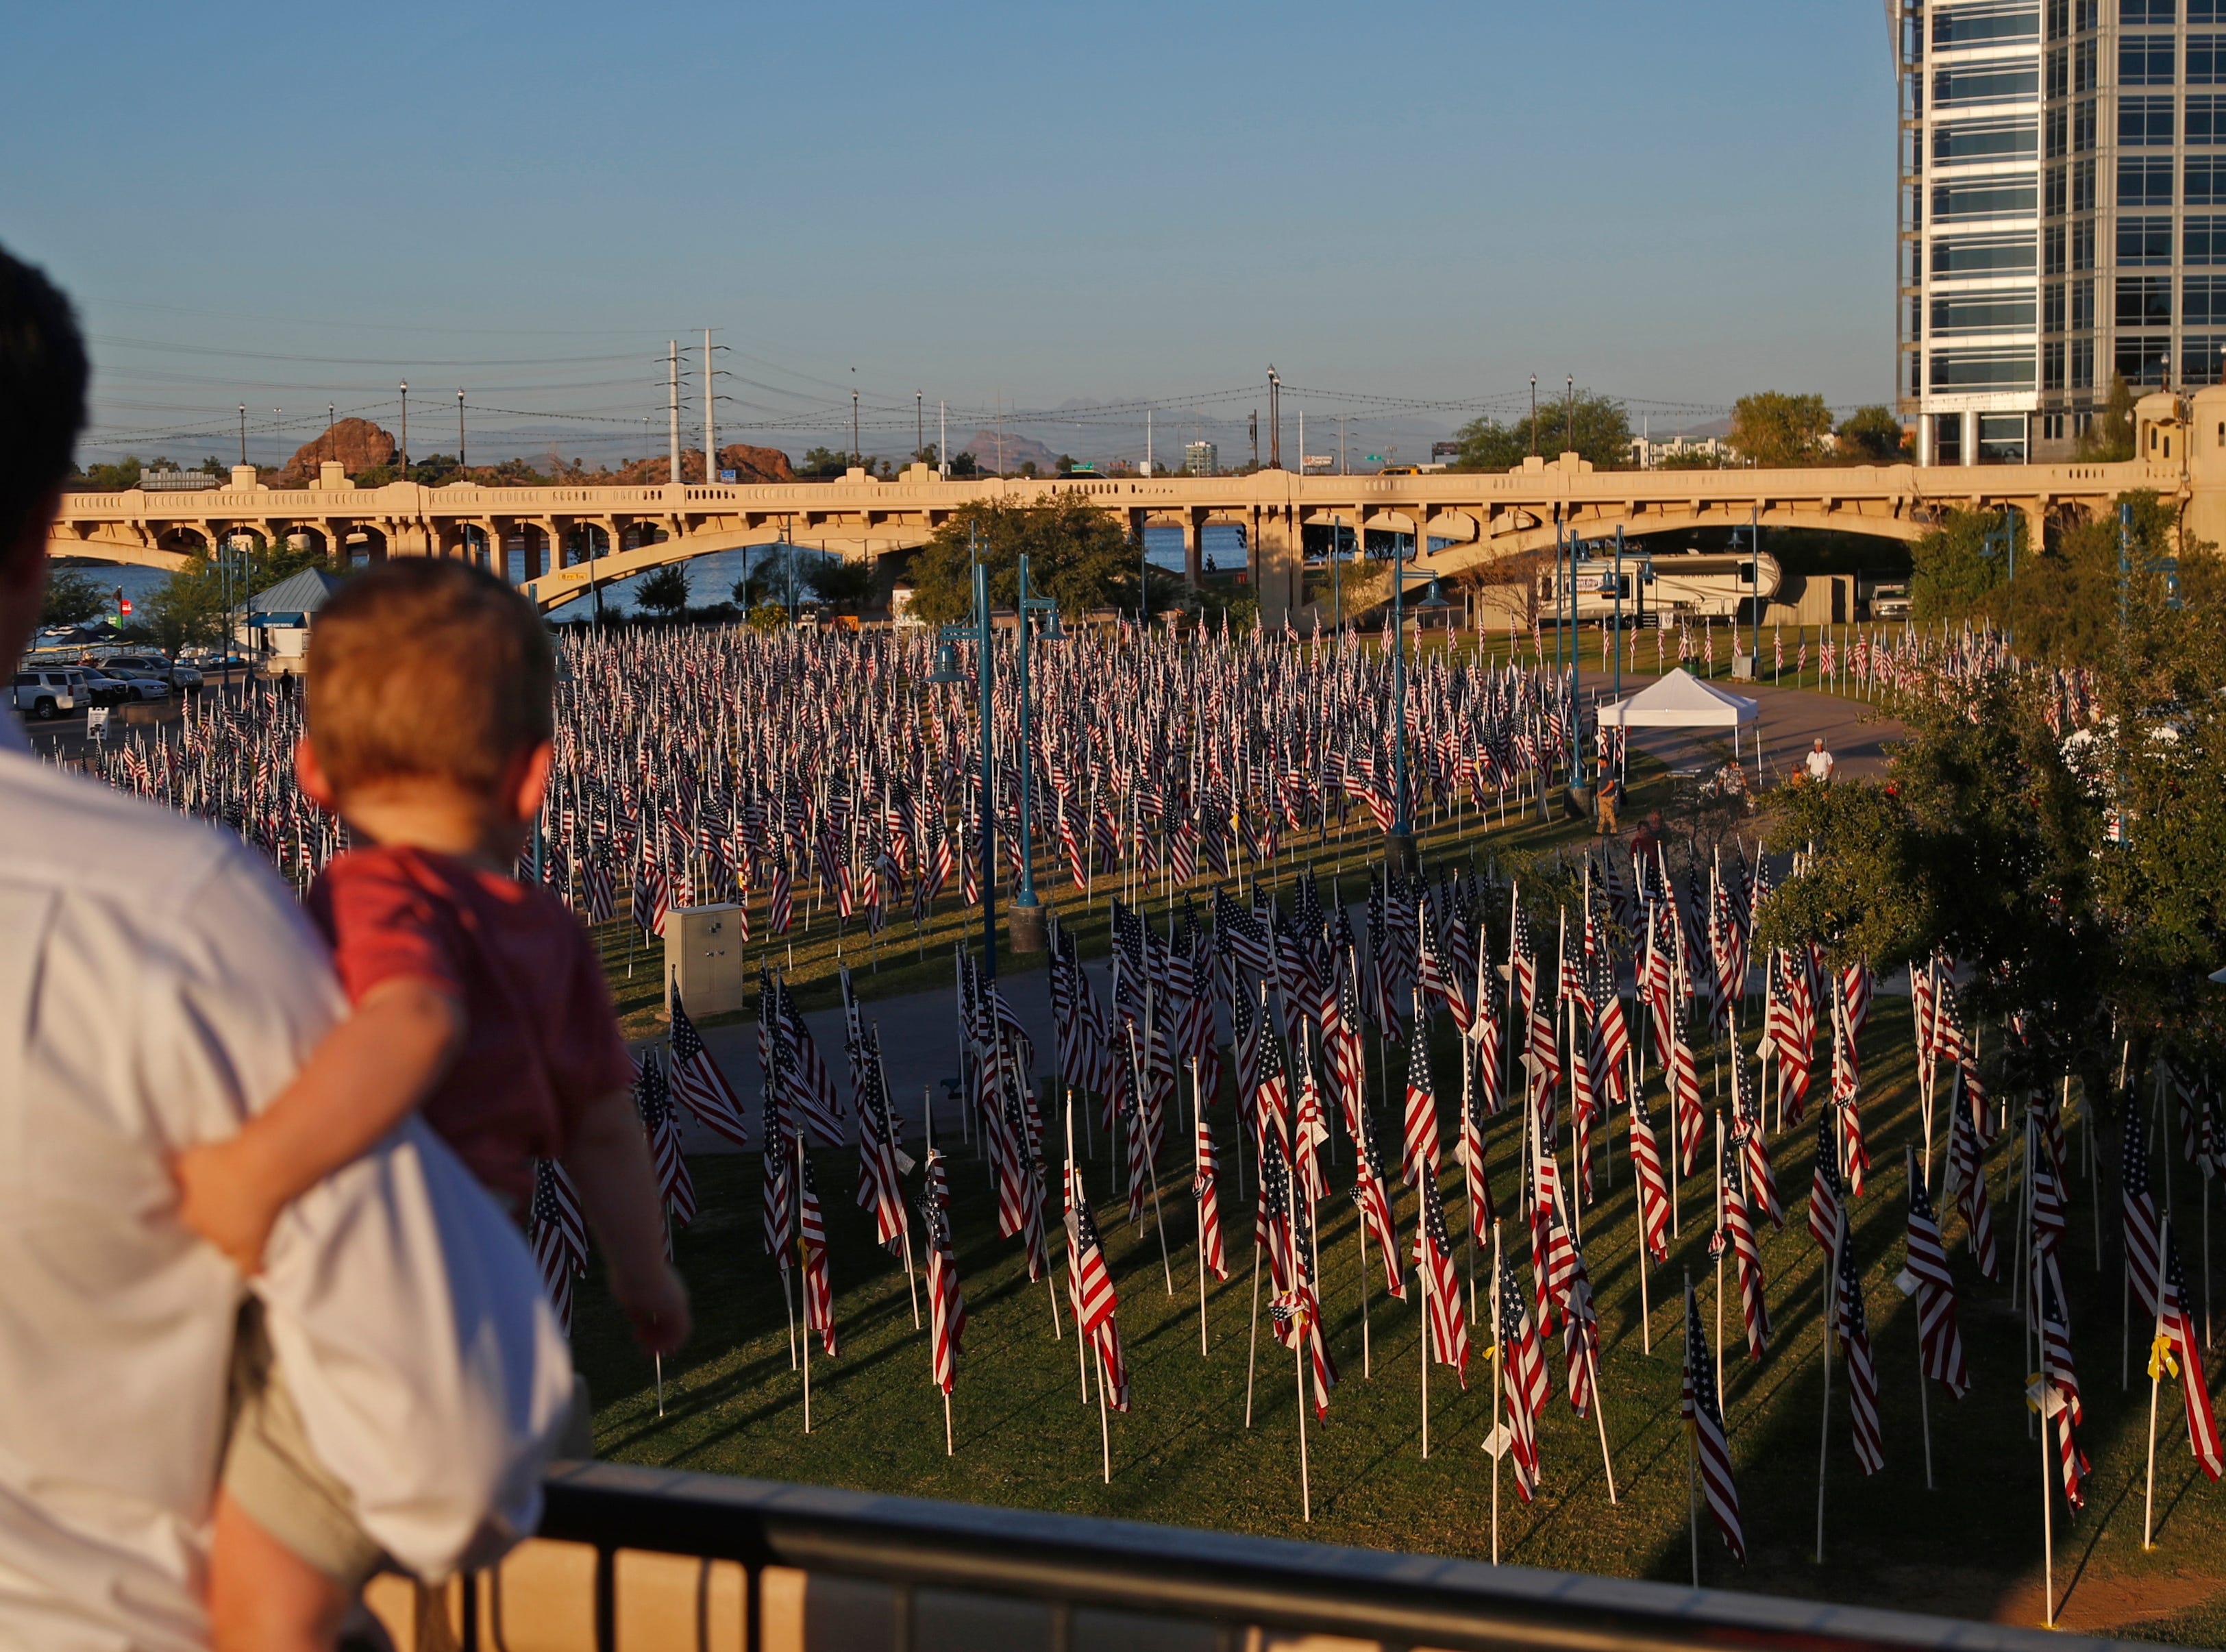 Marcus Johnson holds his son William Johnson, 1, as they look over the flags at the Healing Field at Tempe Beach Park in Tempe on Sept. 10, 2018.